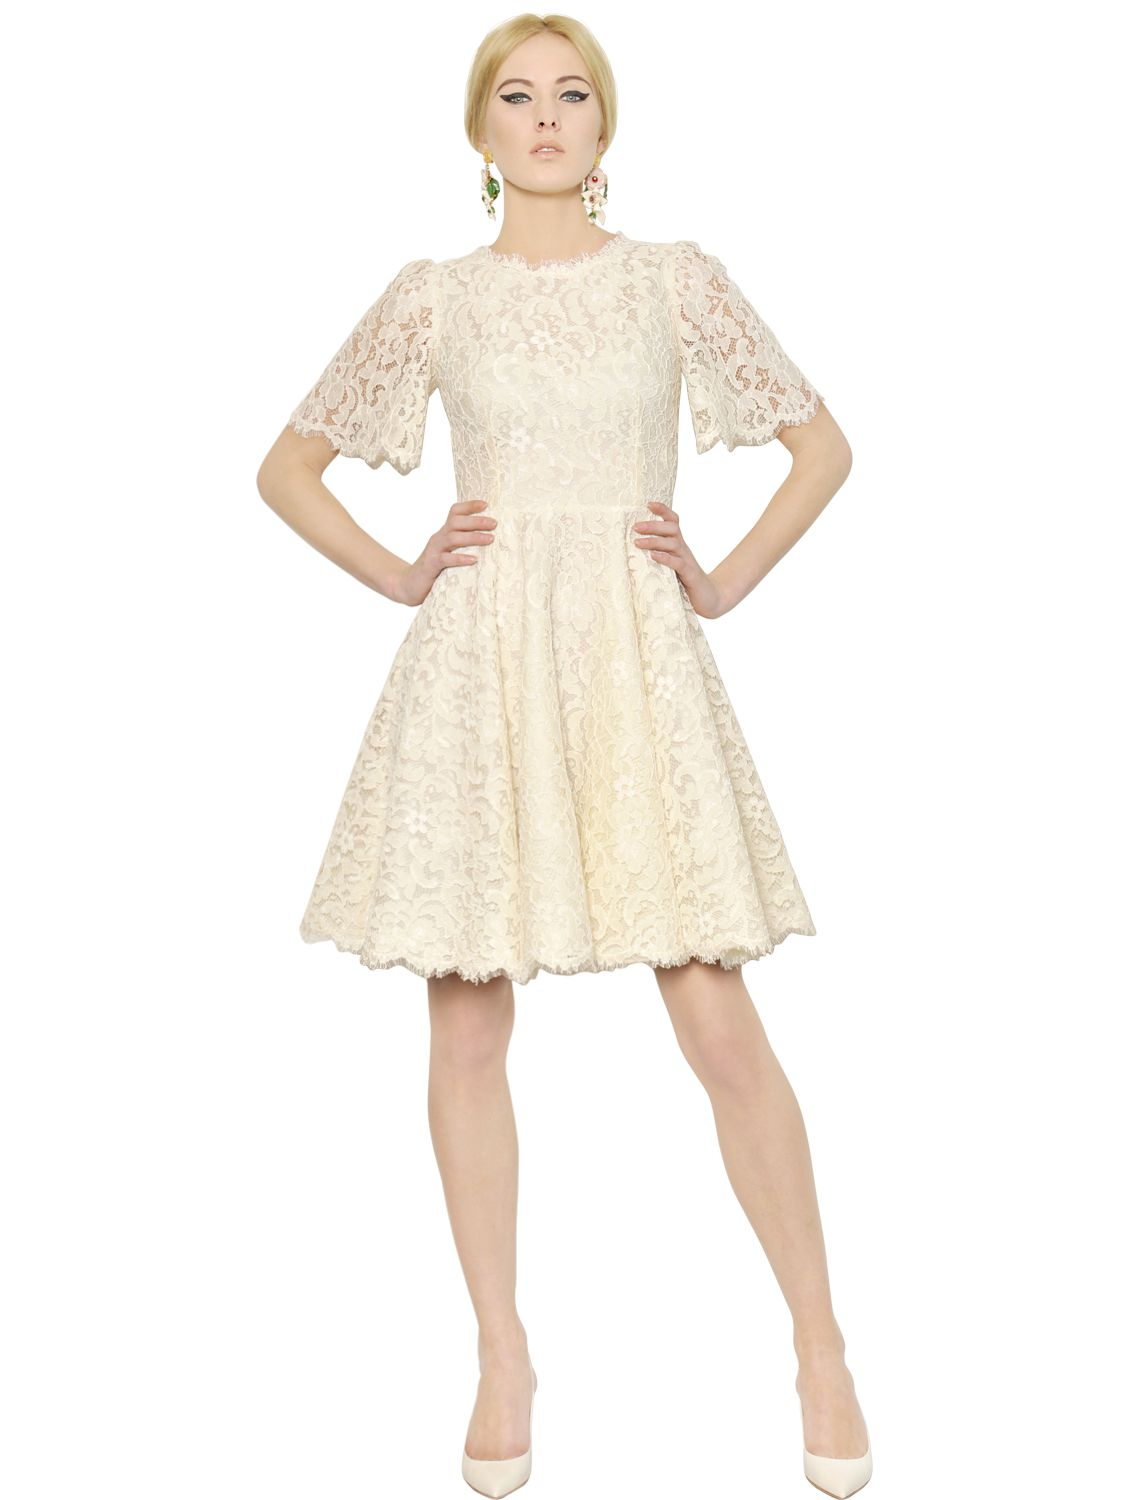 Dolce &amp- gabbana Short Sleeve Cotton Lace Dress in White - Lyst